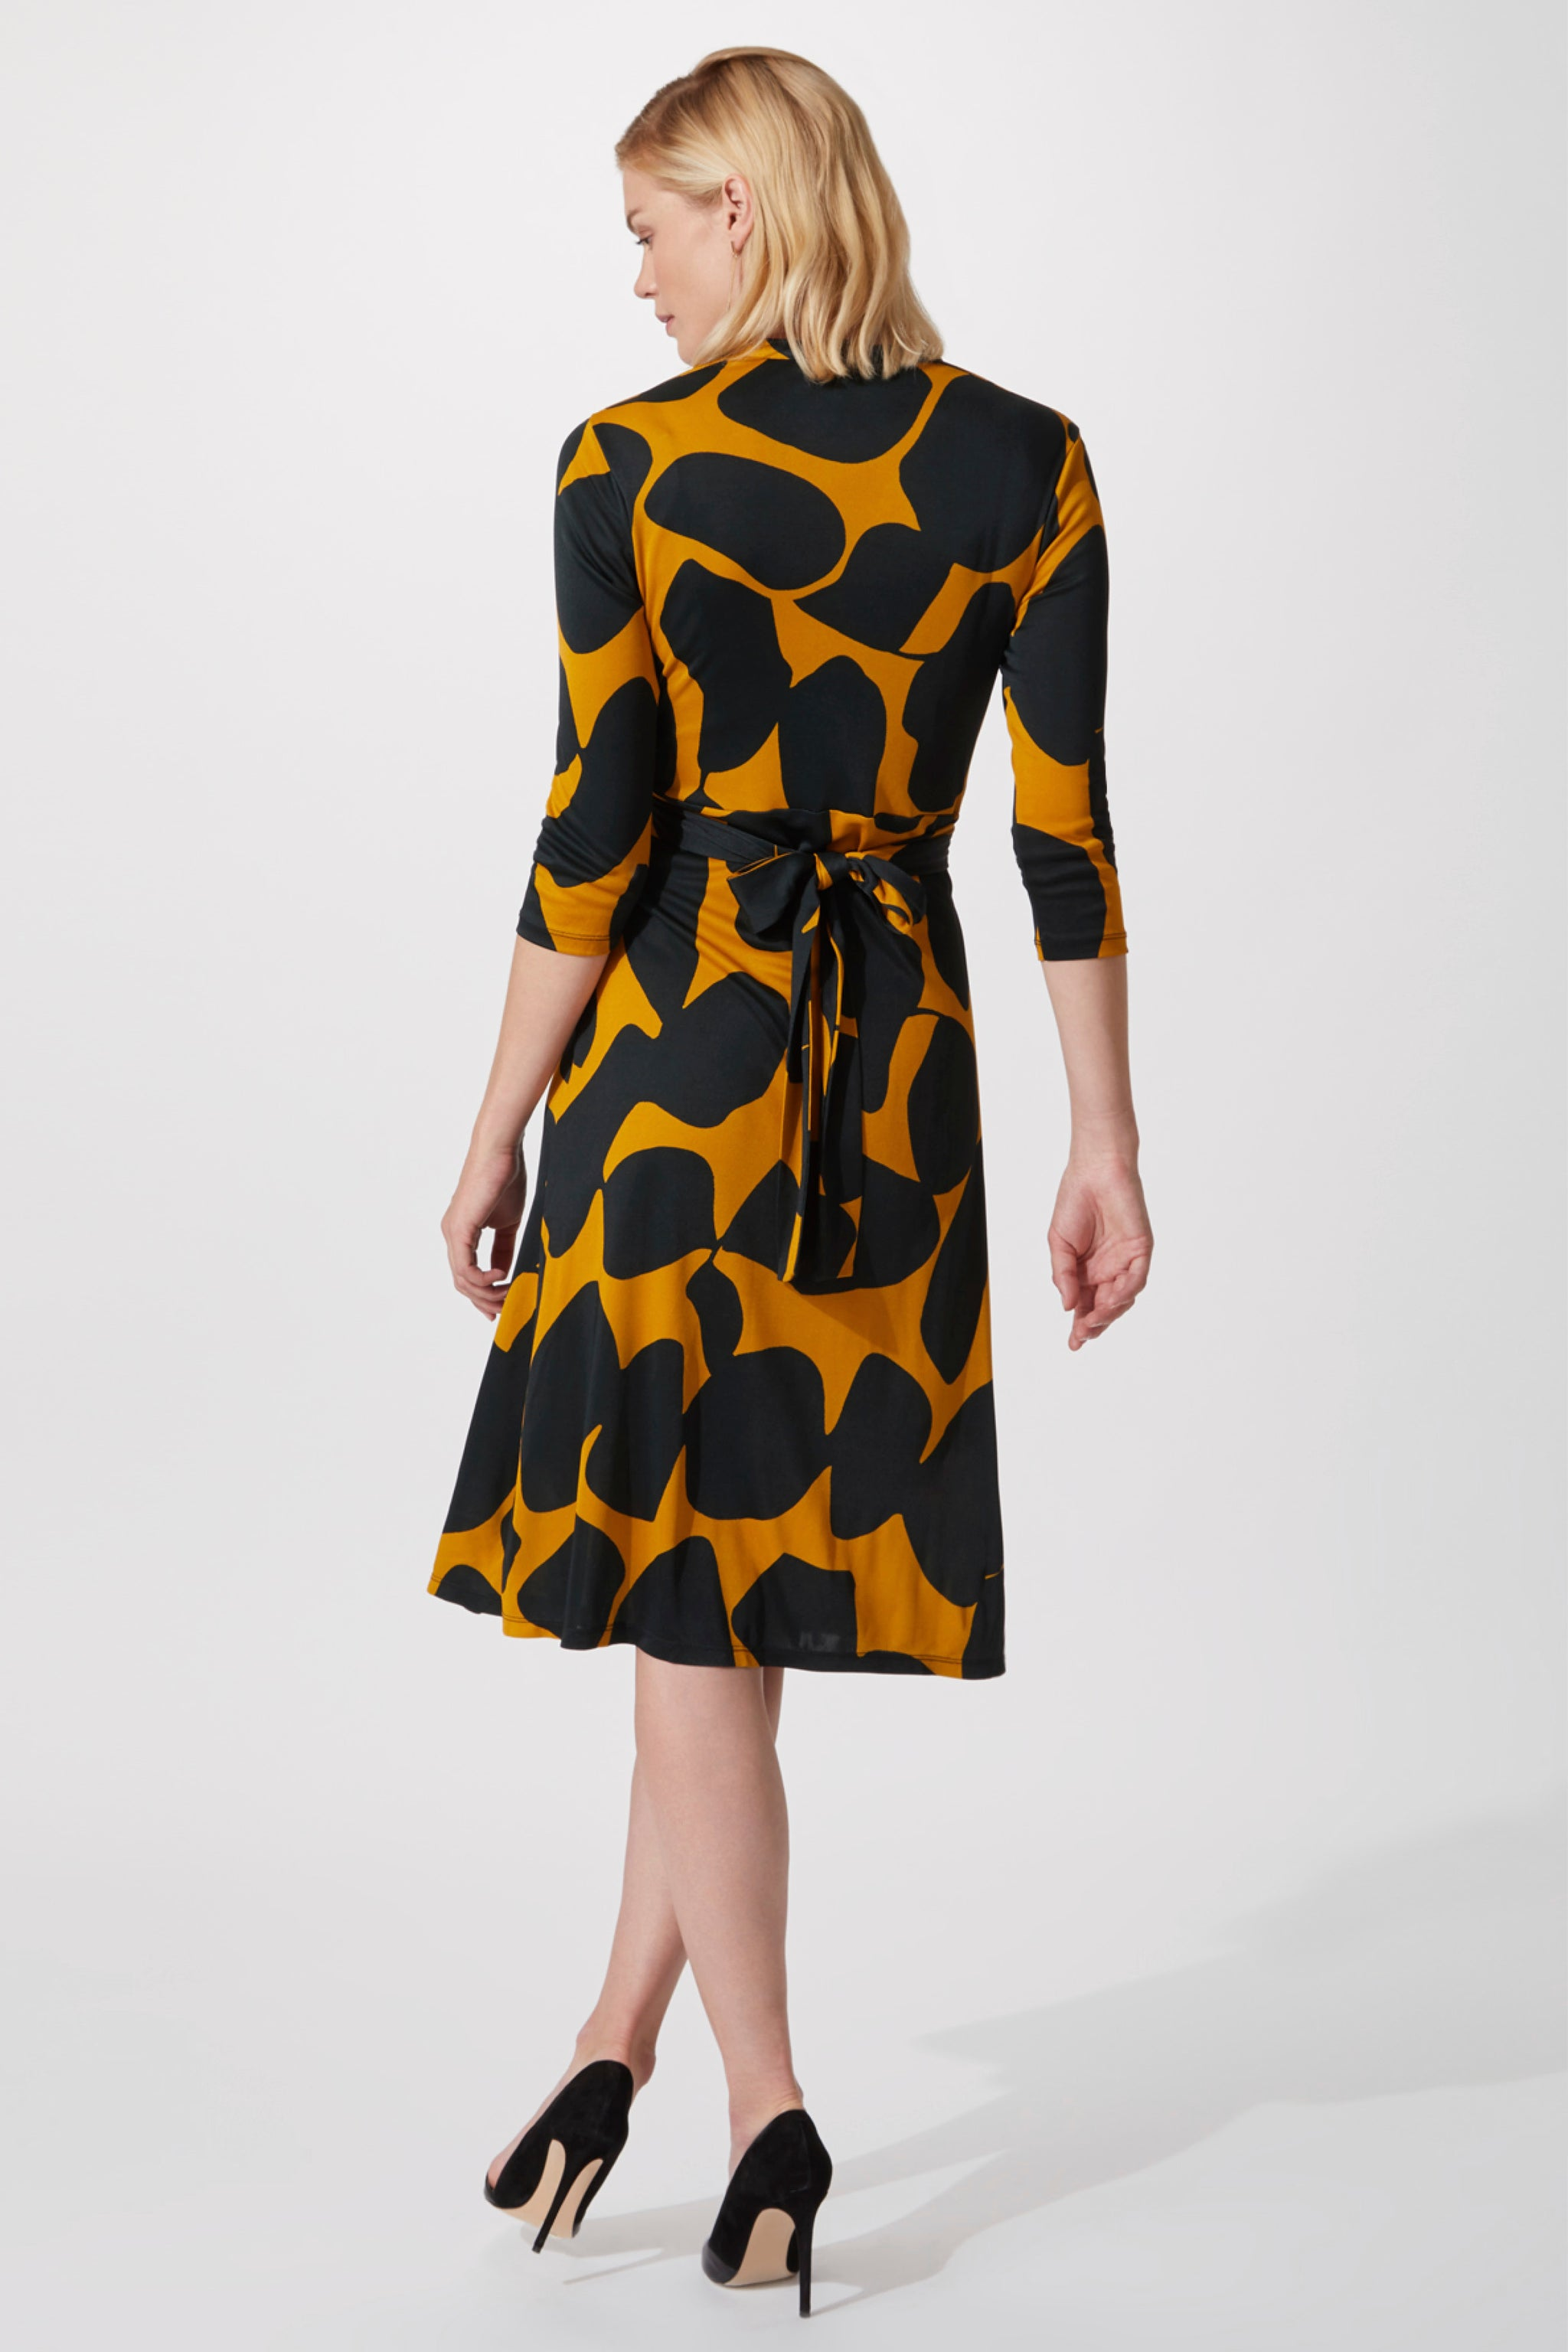 Radley Abstract Print Dress